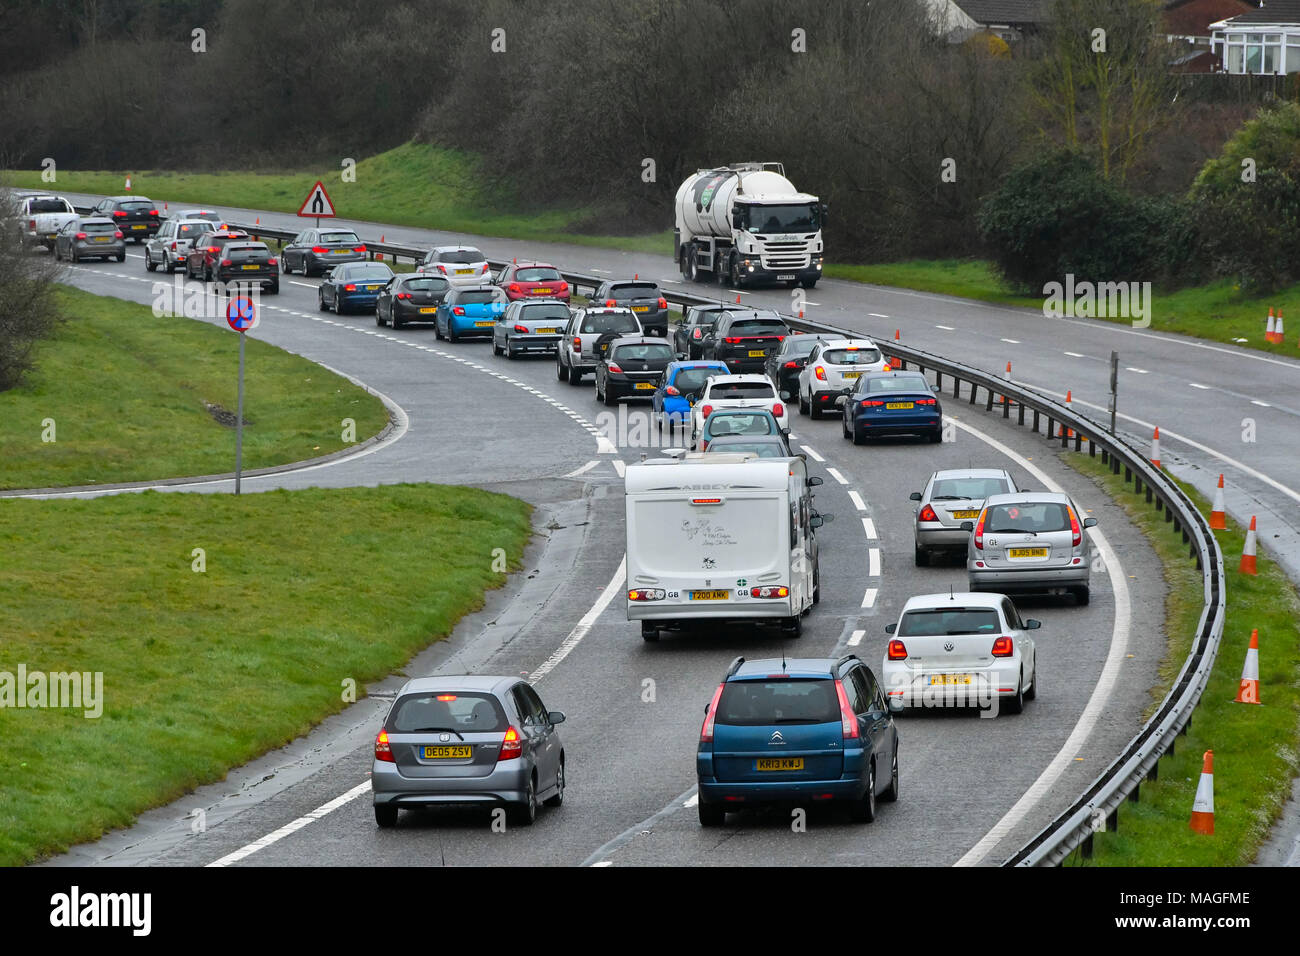 Honiton, Devon, UK. 2nd April 2018. Holidaymakers queuing in a traffic jam on the East bound carriageway on the A30 at Honiton in Devon on Easter Monday as they return home from their Easter weekend holidays.  Picture Credit: Graham Hunt/Alamy Live News - Stock Image